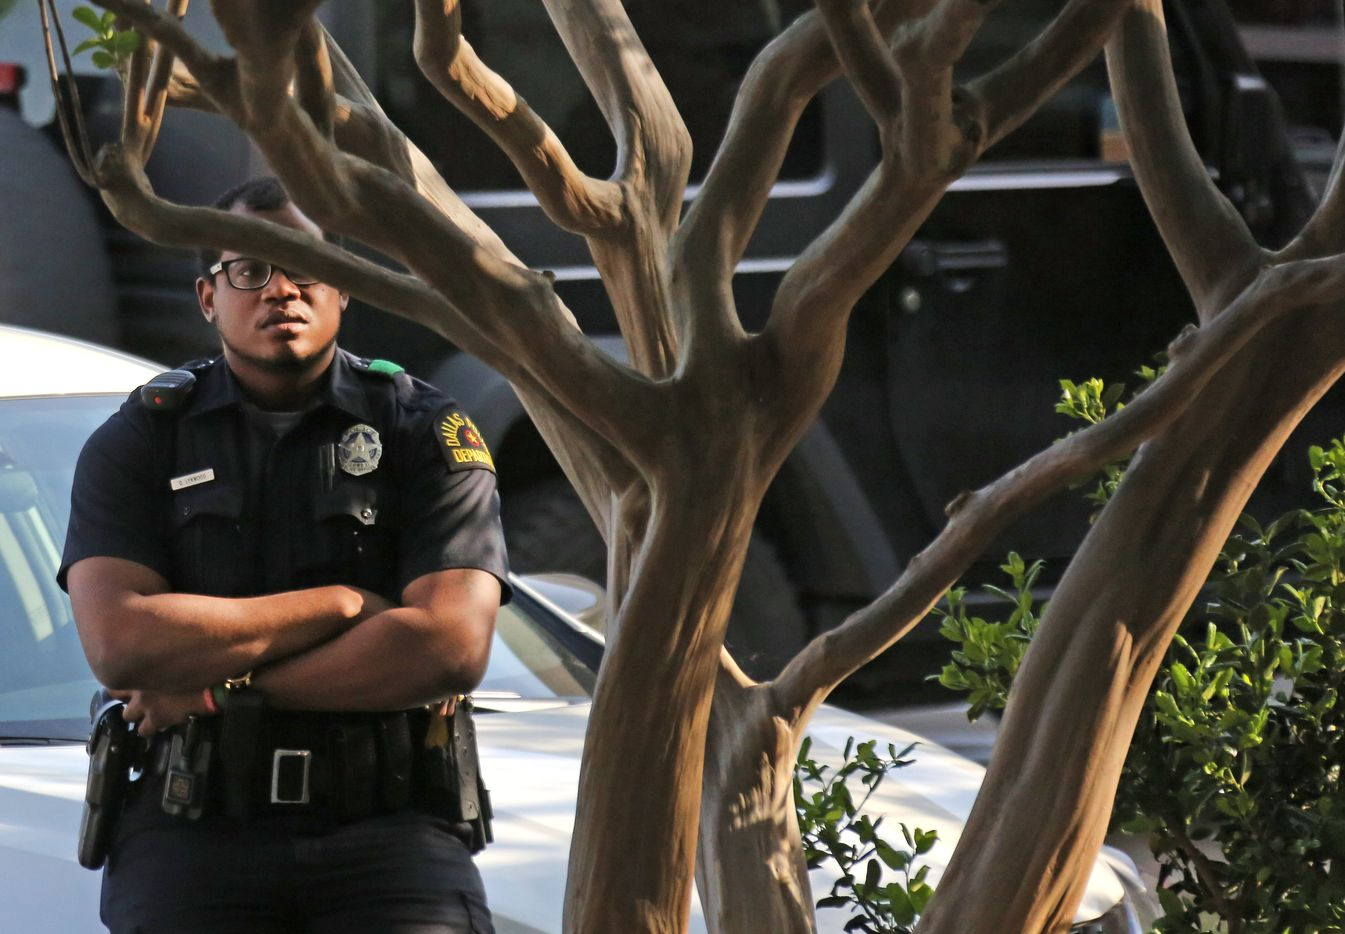 A Dallas police officer watches from a distance at the emergency room entrance at Presbyterian Hospital in Dallas. Two Dallas policemen were reportedly shot at a nearby Home Depot and reportedly were transported to the Dallas hospital on April 24, 2018.